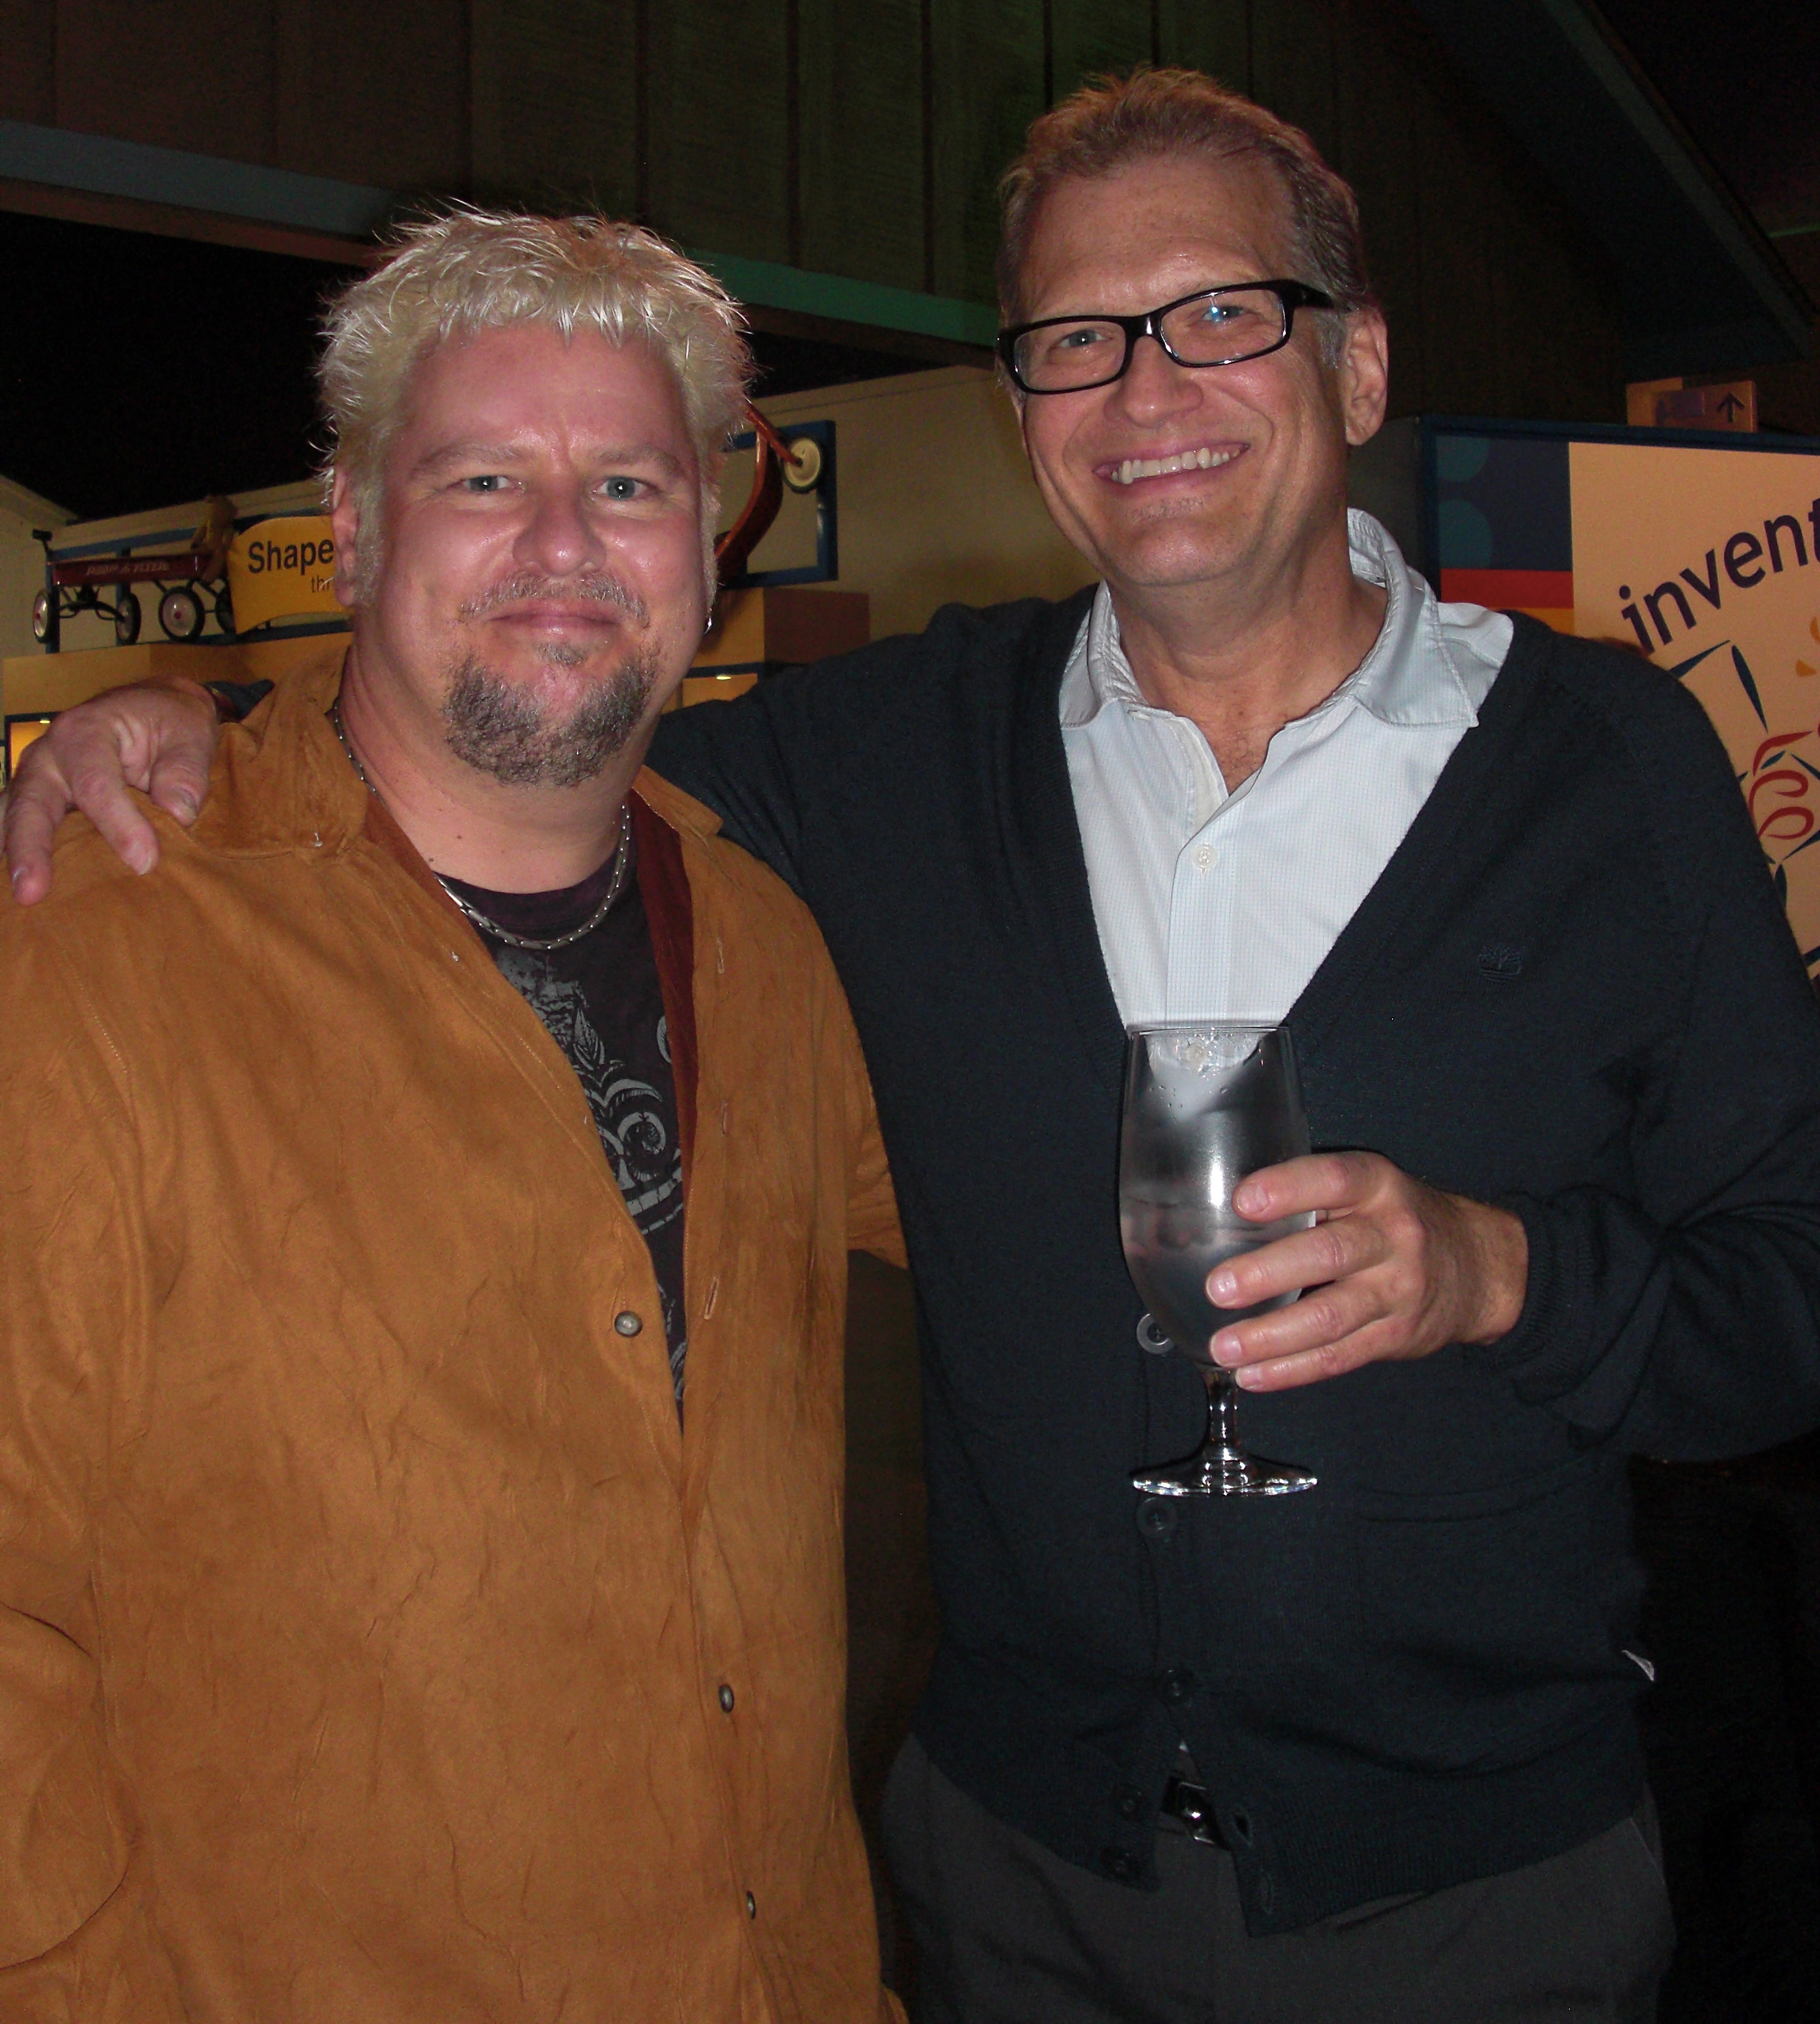 Pete Lacey and Drew Carey.JPG